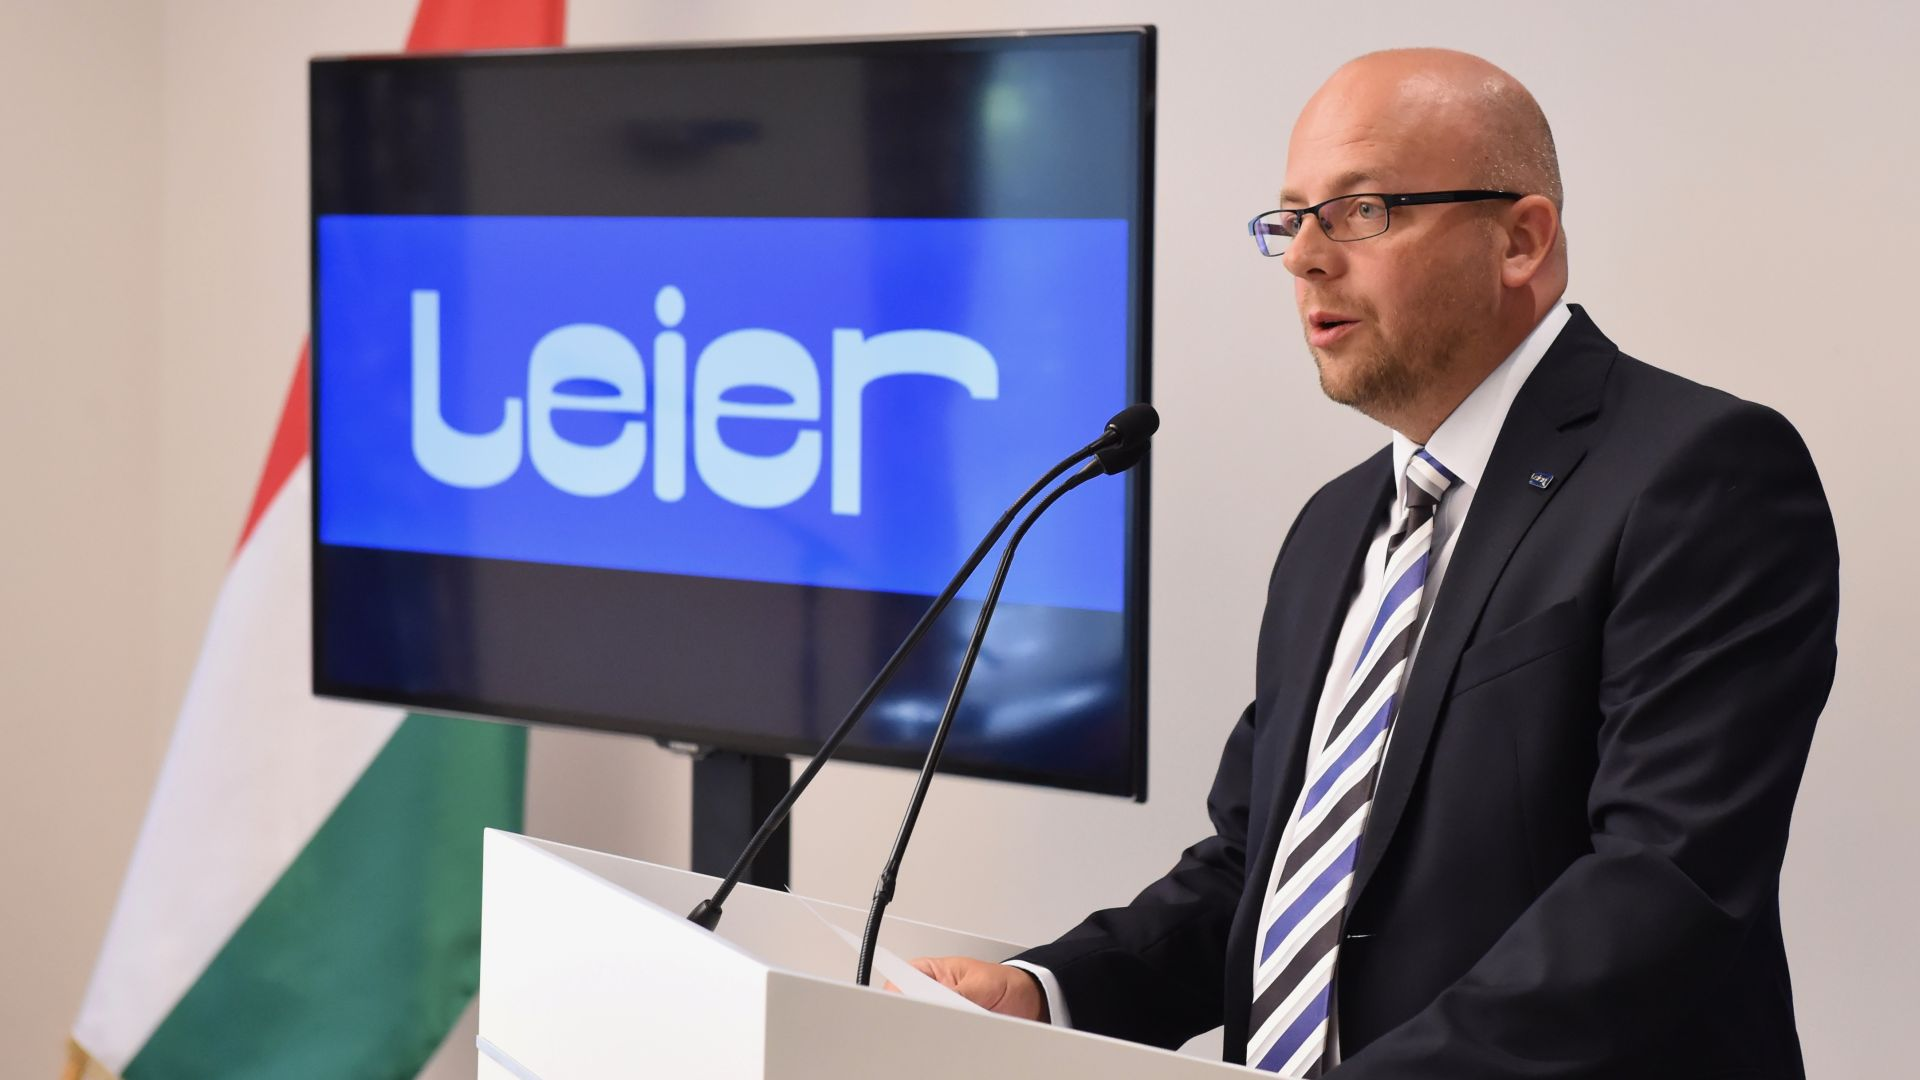 Leier continues to see Hungary as the possibility for development